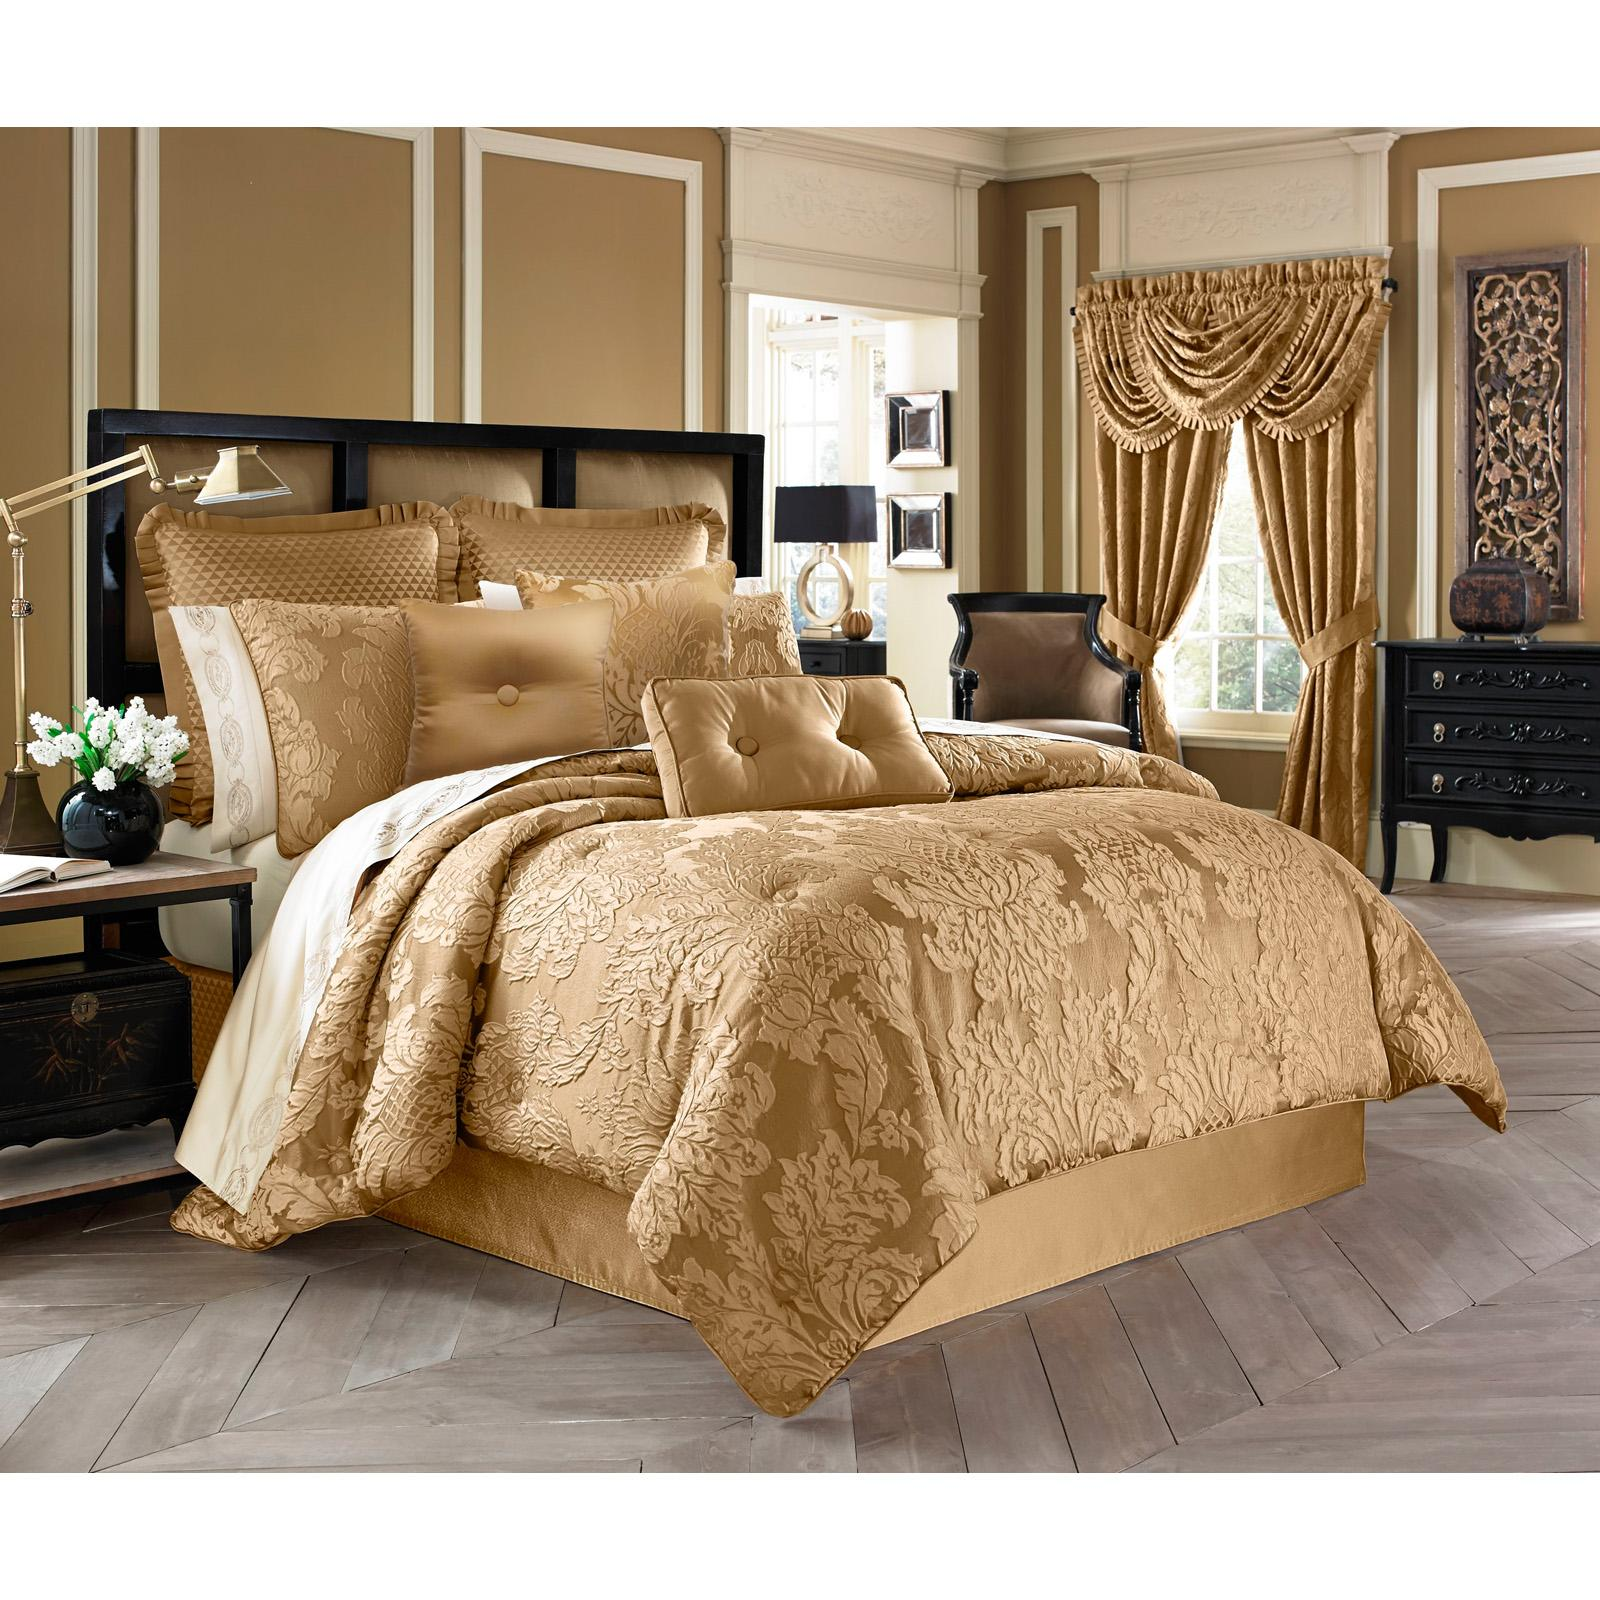 Colonial 4 Piece Comforter Set by Five Queens Court - 205...